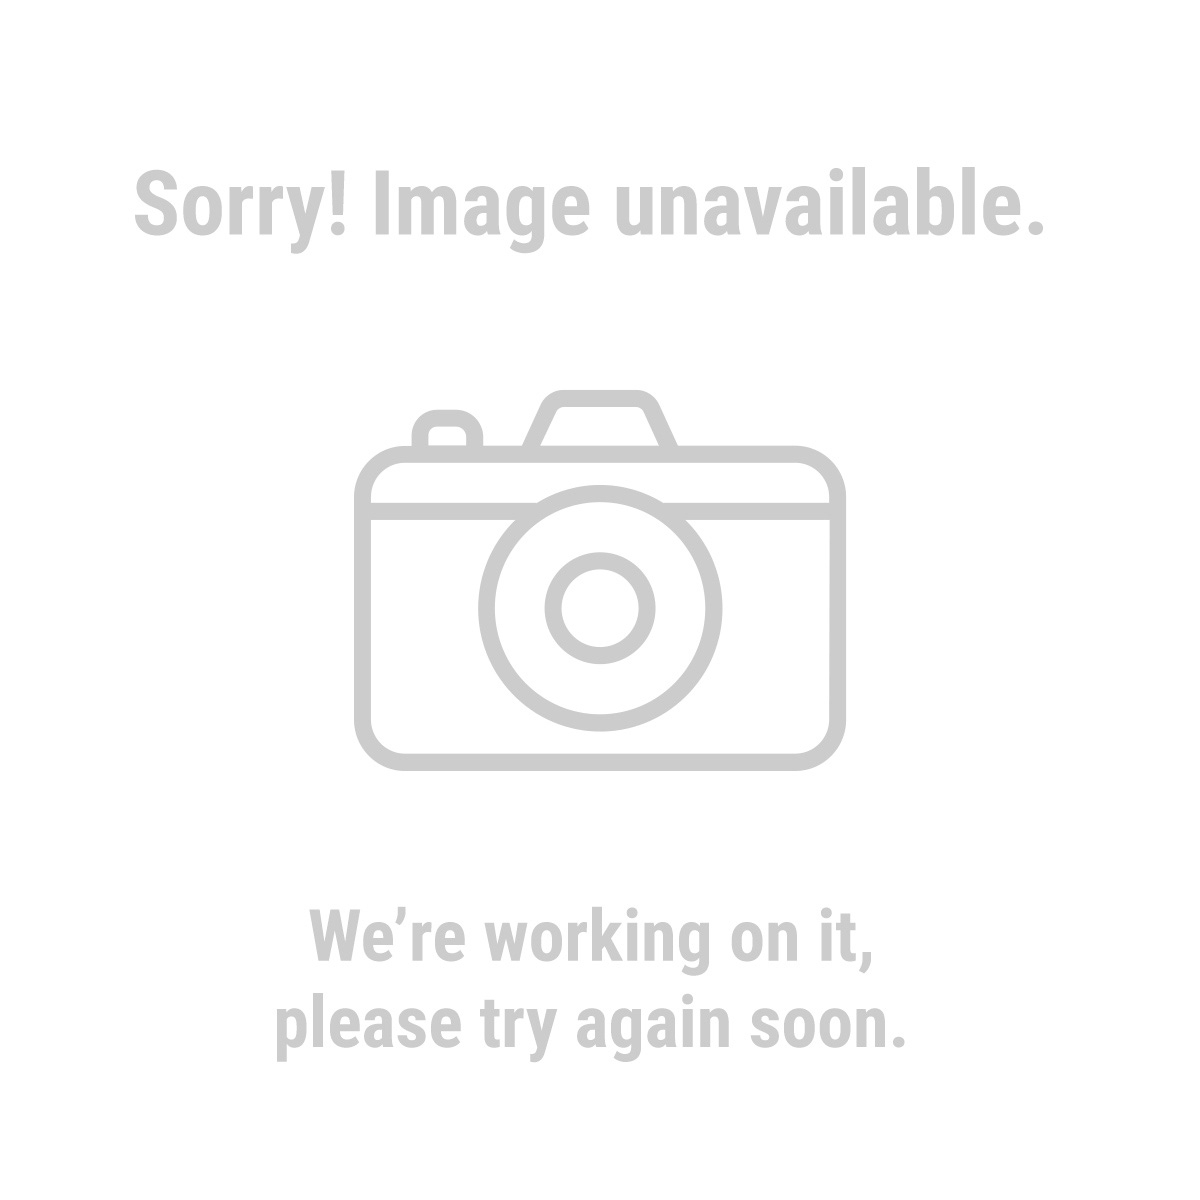 Central-Machinery 40612 Mobile Folding Power Tool Stand